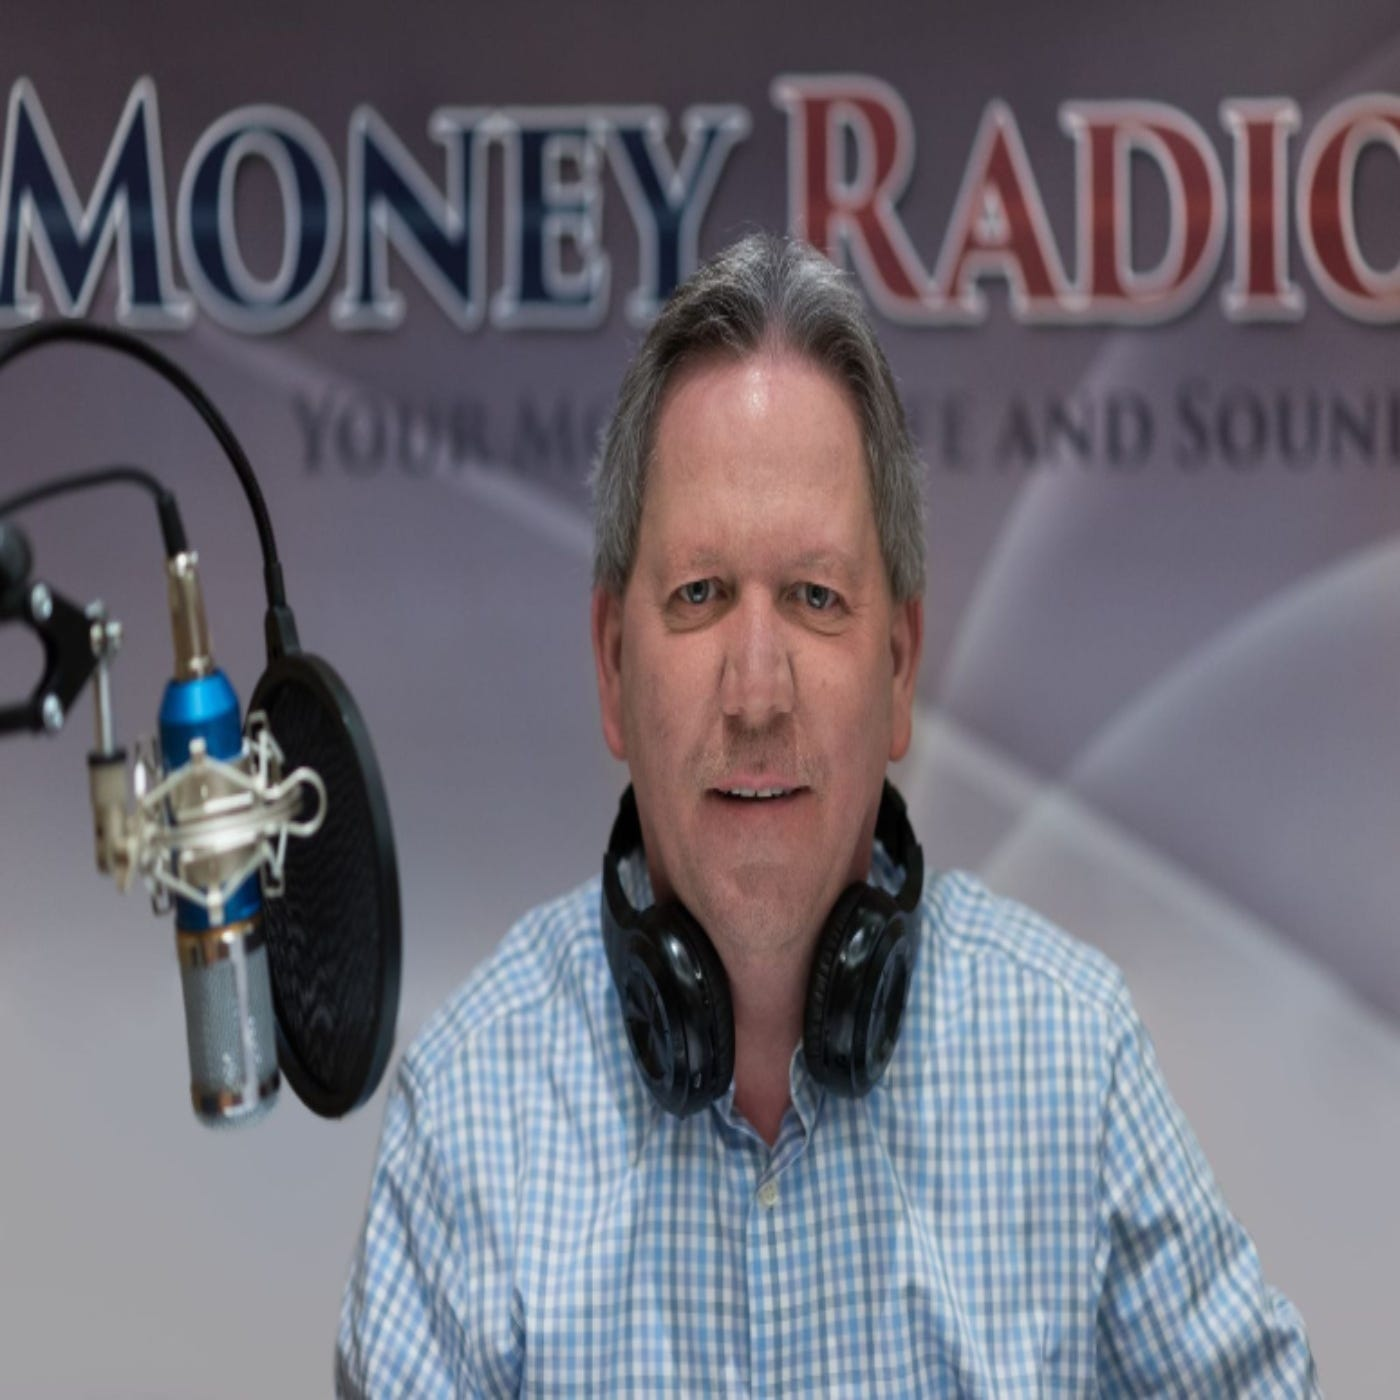 Safe Money Radio 971 Podcast